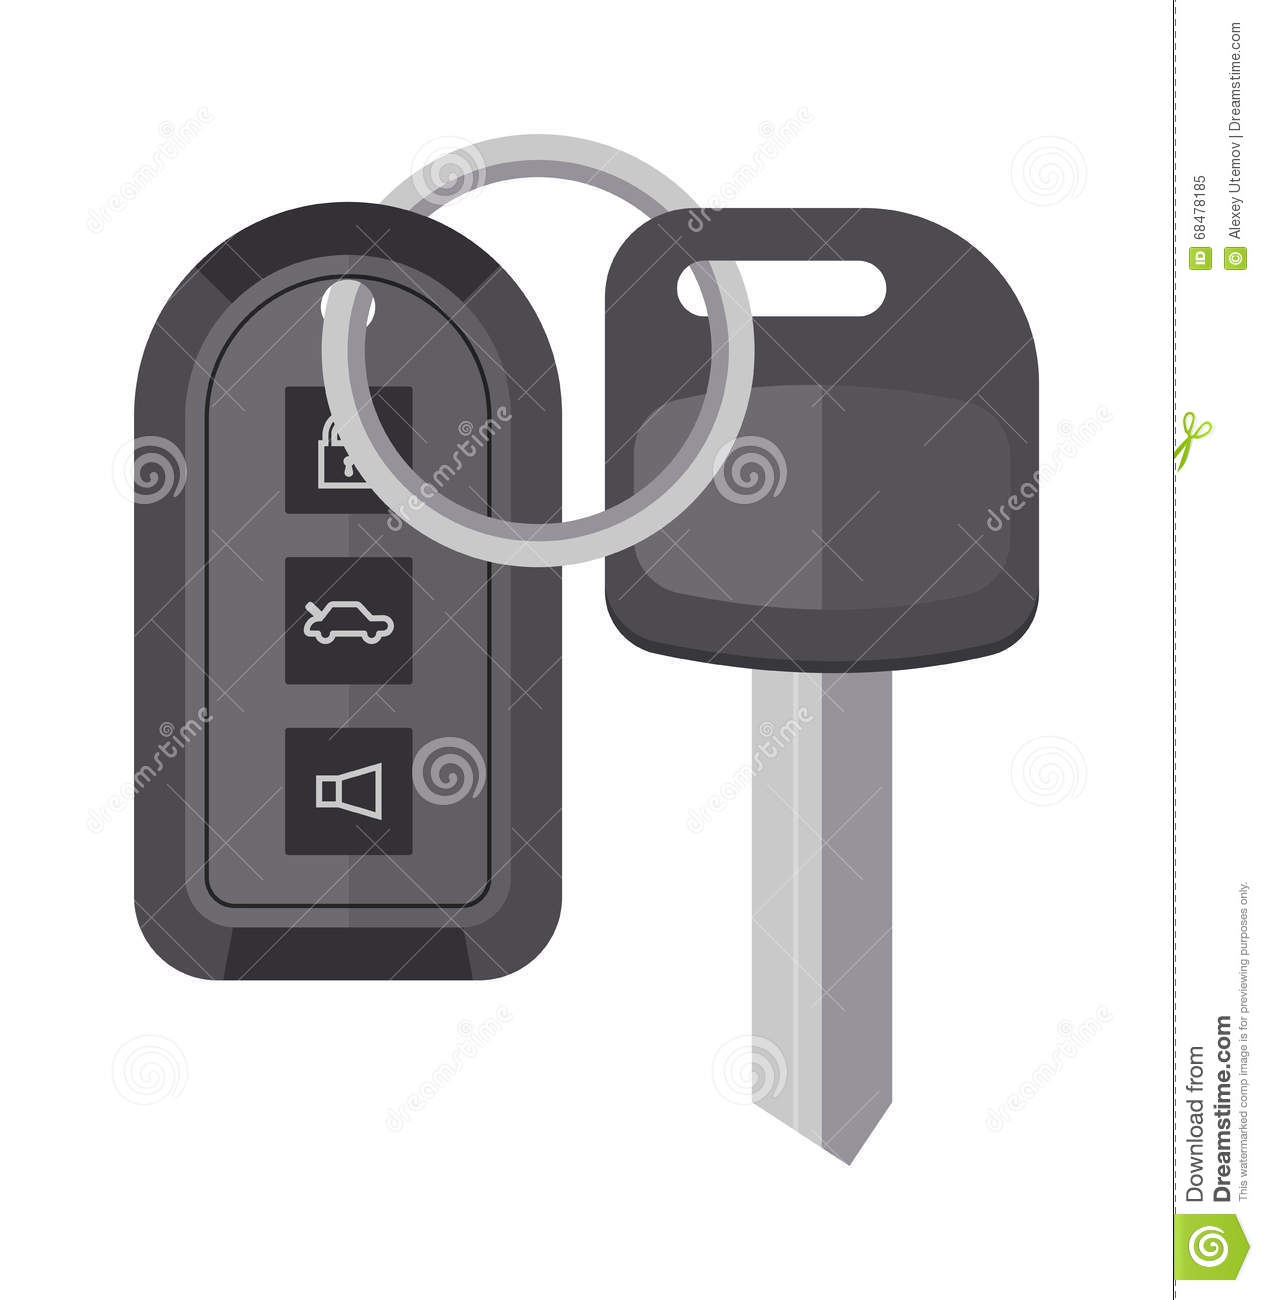 Security Car Key With Remote Control Cartoon Flat Vector